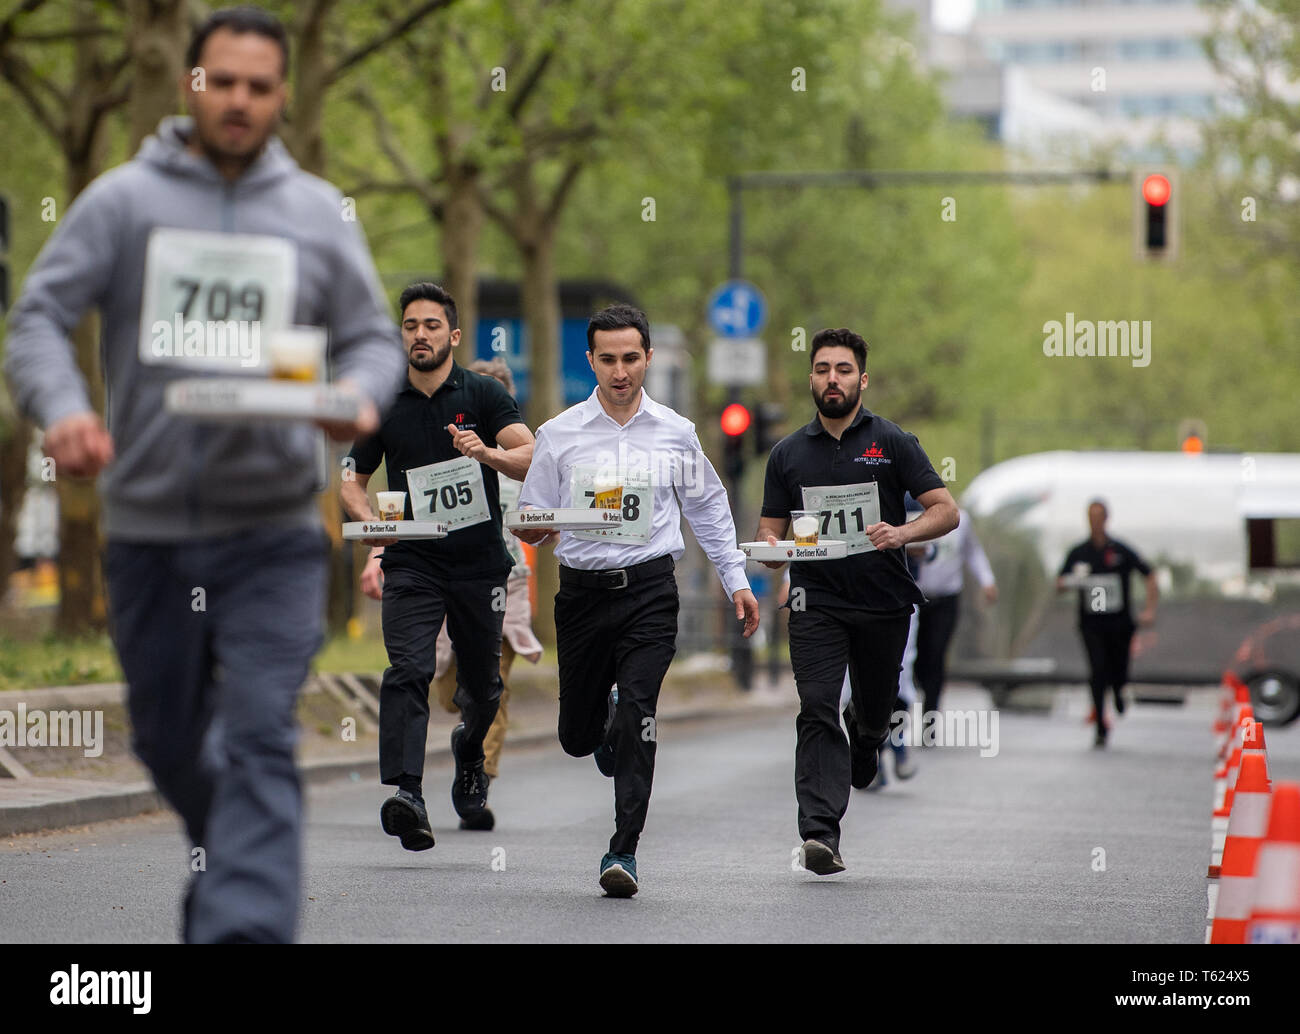 Berlin, Germany. 28th Apr, 2019. At the 9th Berliner Kellnerlauf, waiters walk across the Kurfürstendamm with filled trays. Waiters, barkeepers, chefs and bellboys compete in the art of fast gastronomy. The 400 meter long running track is located on the one-sided closed Ku'damm. Credit: Monika Skolimowska/dpa-Zentralbild/dpa/Alamy Live News Stock Photo